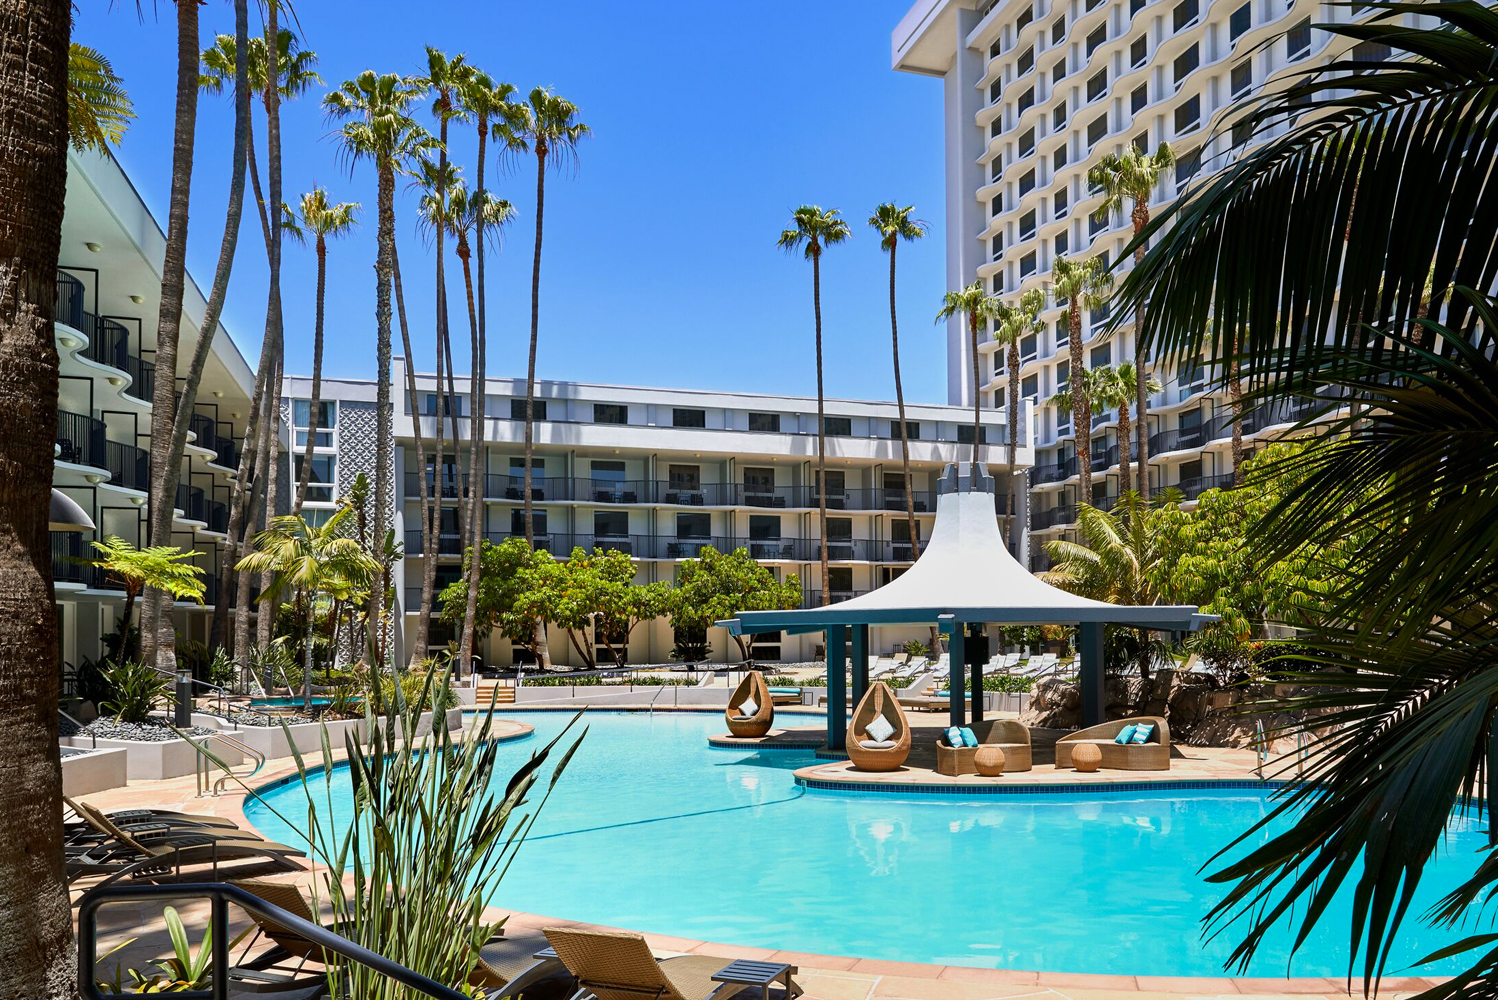 The property is in close proximity to Los Angeles International Airport.